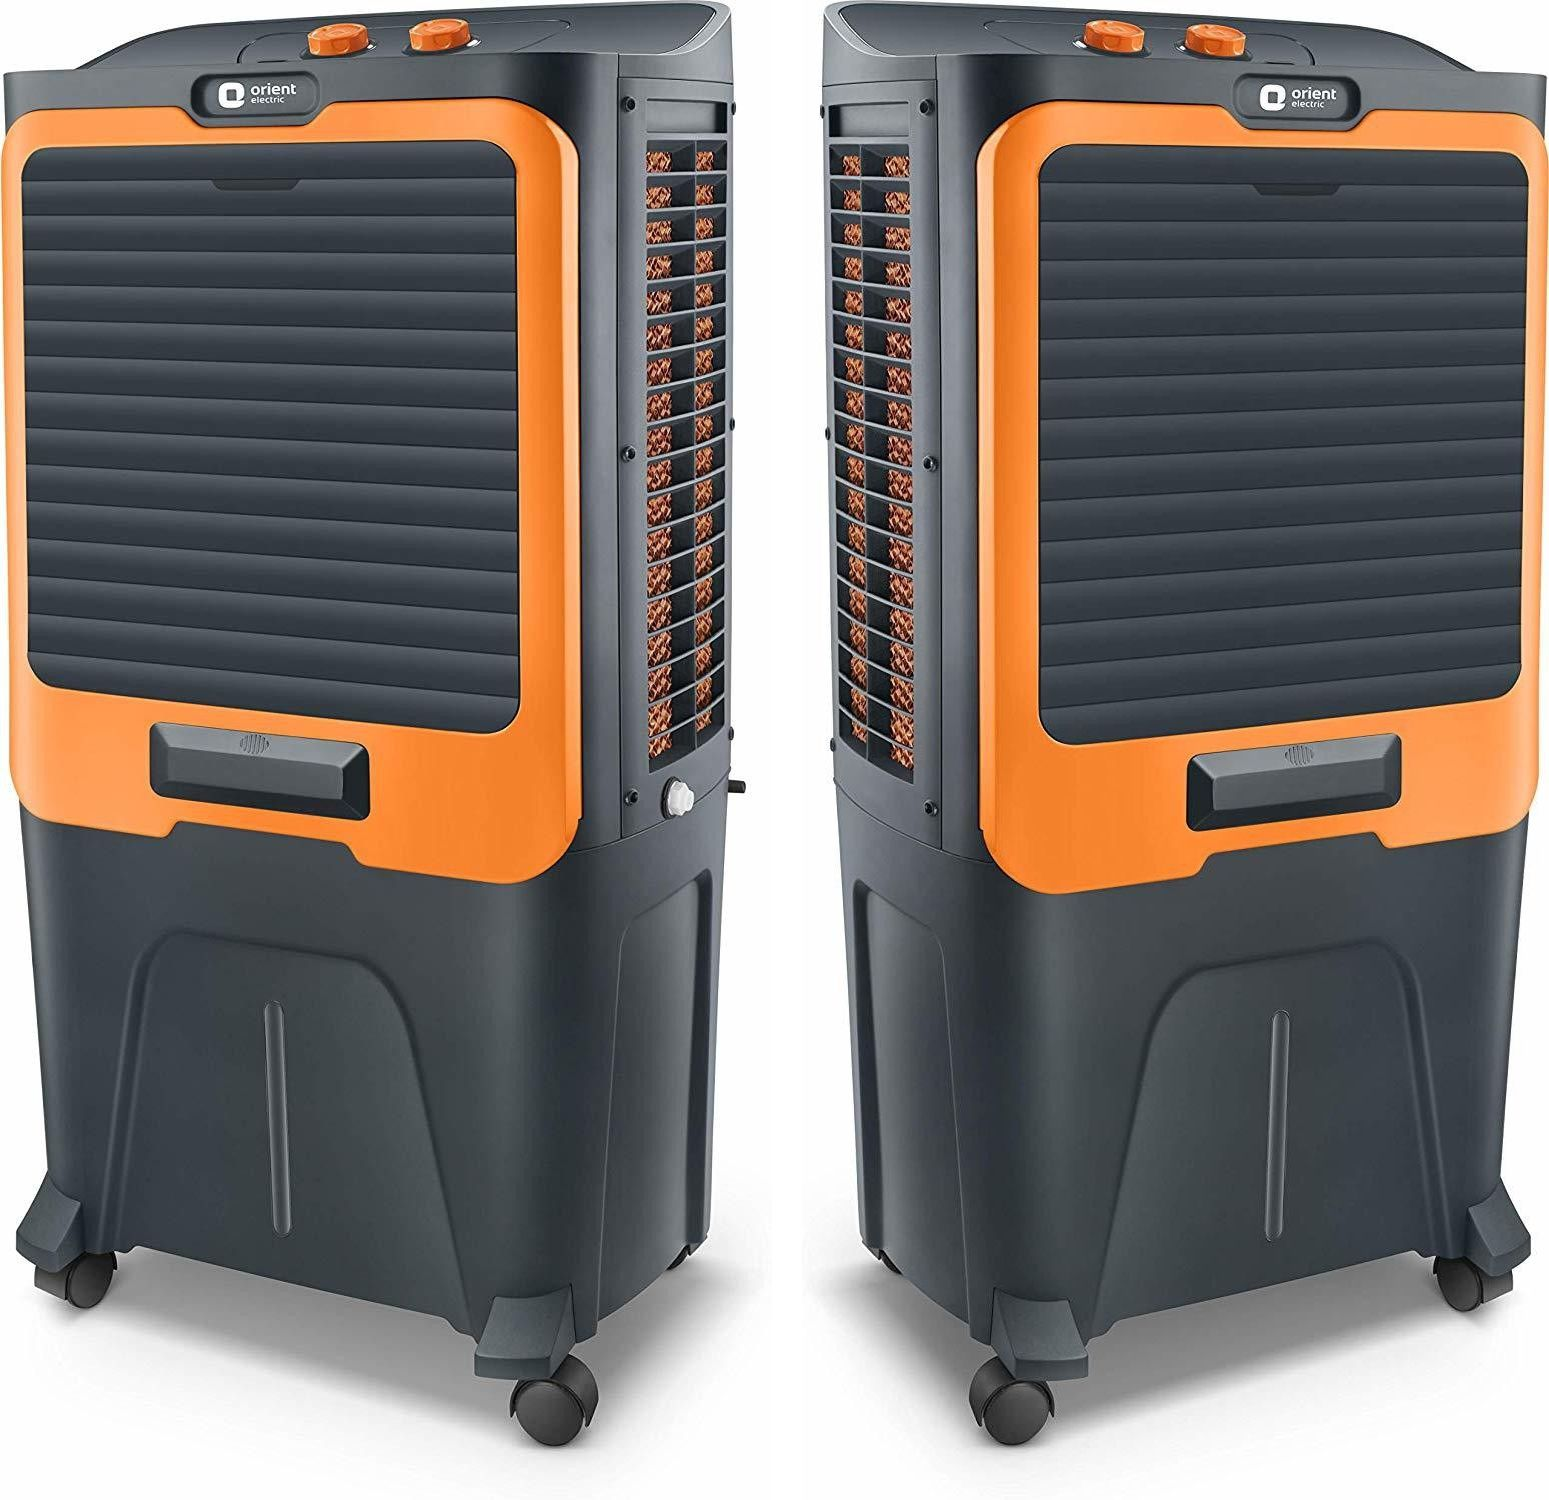 6 Best Air Cooler under 15000 Rupees in India Market | Air cooler, Smart  electronics, Latest gadgets